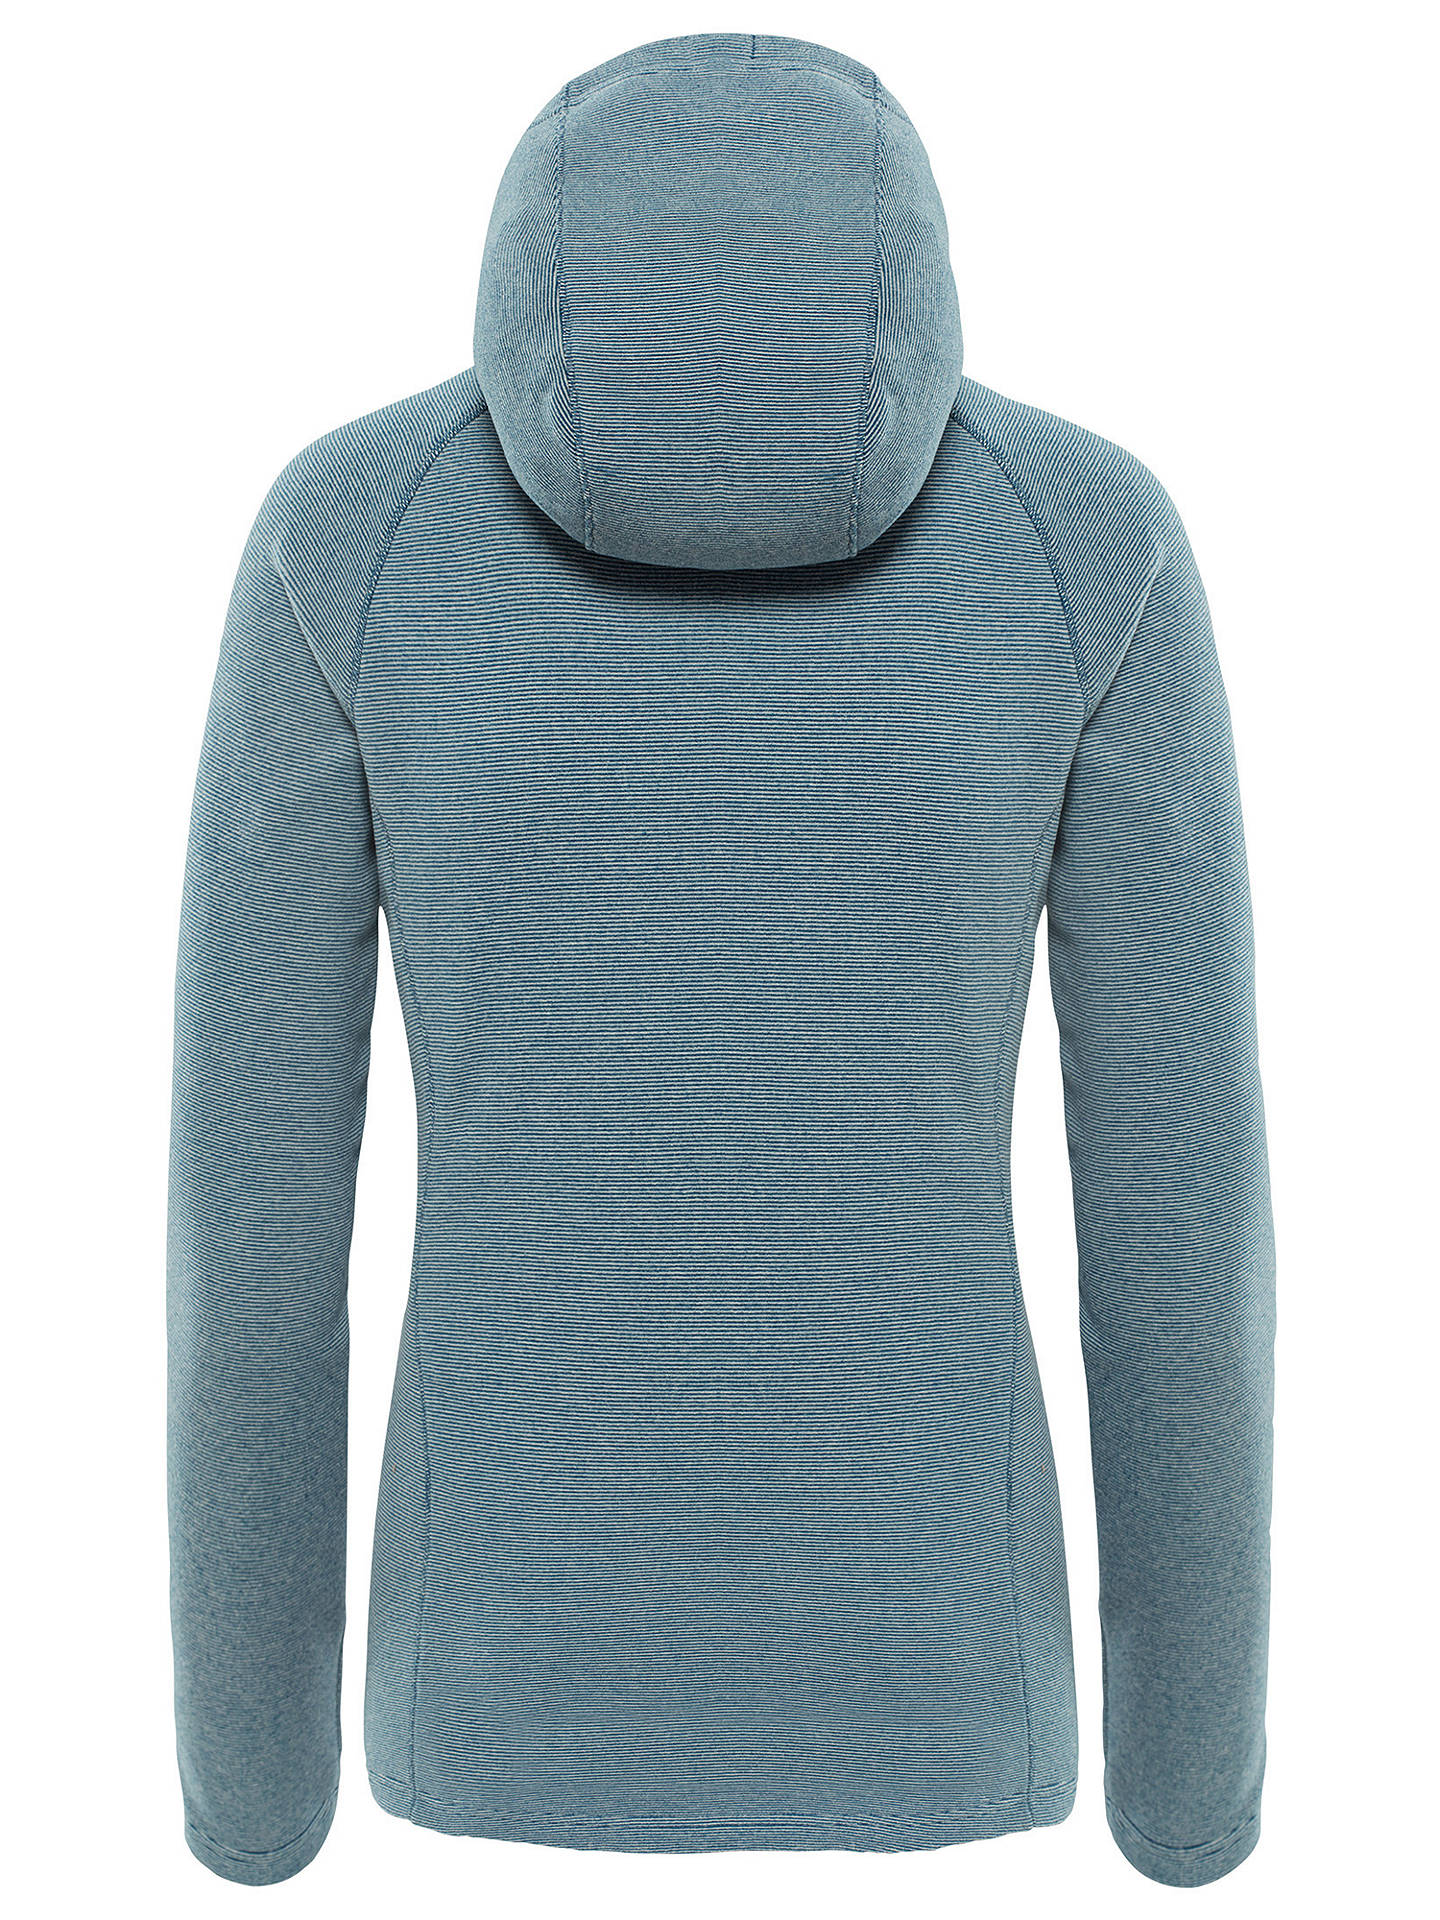 BuyThe North Face Mezzaluna Women's Hoodie, Rabbit Grey Stripe, S Online at johnlewis.com